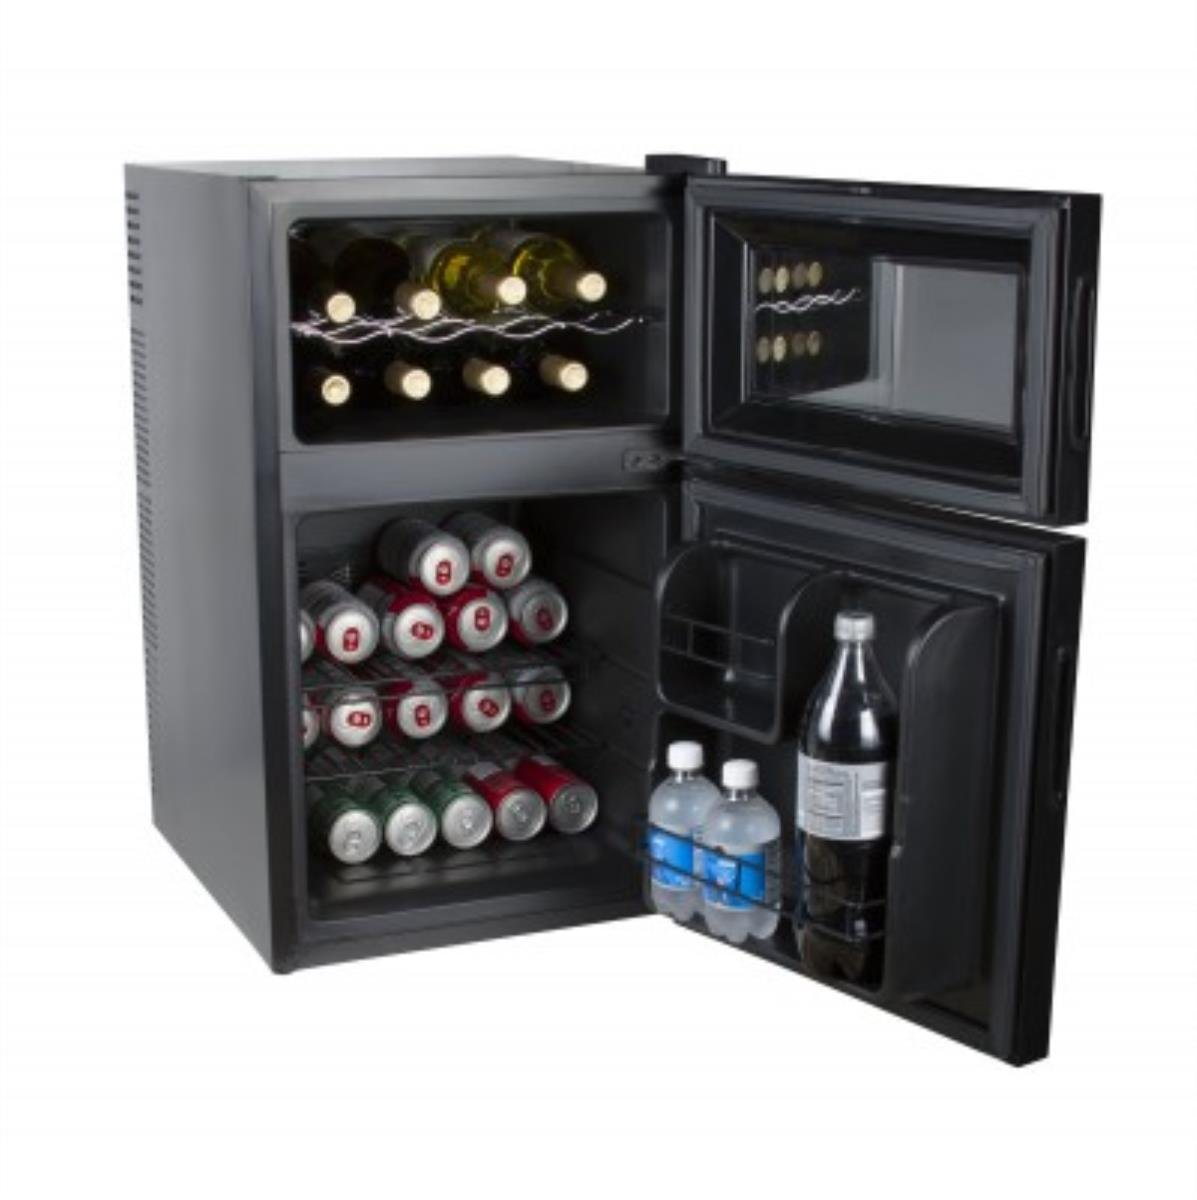 Kalorik Mini Fridge and Wine Cooler, WCL 42513 BK, 2-in-1 Beer or Soda and Wine Fridge Cooler, Black